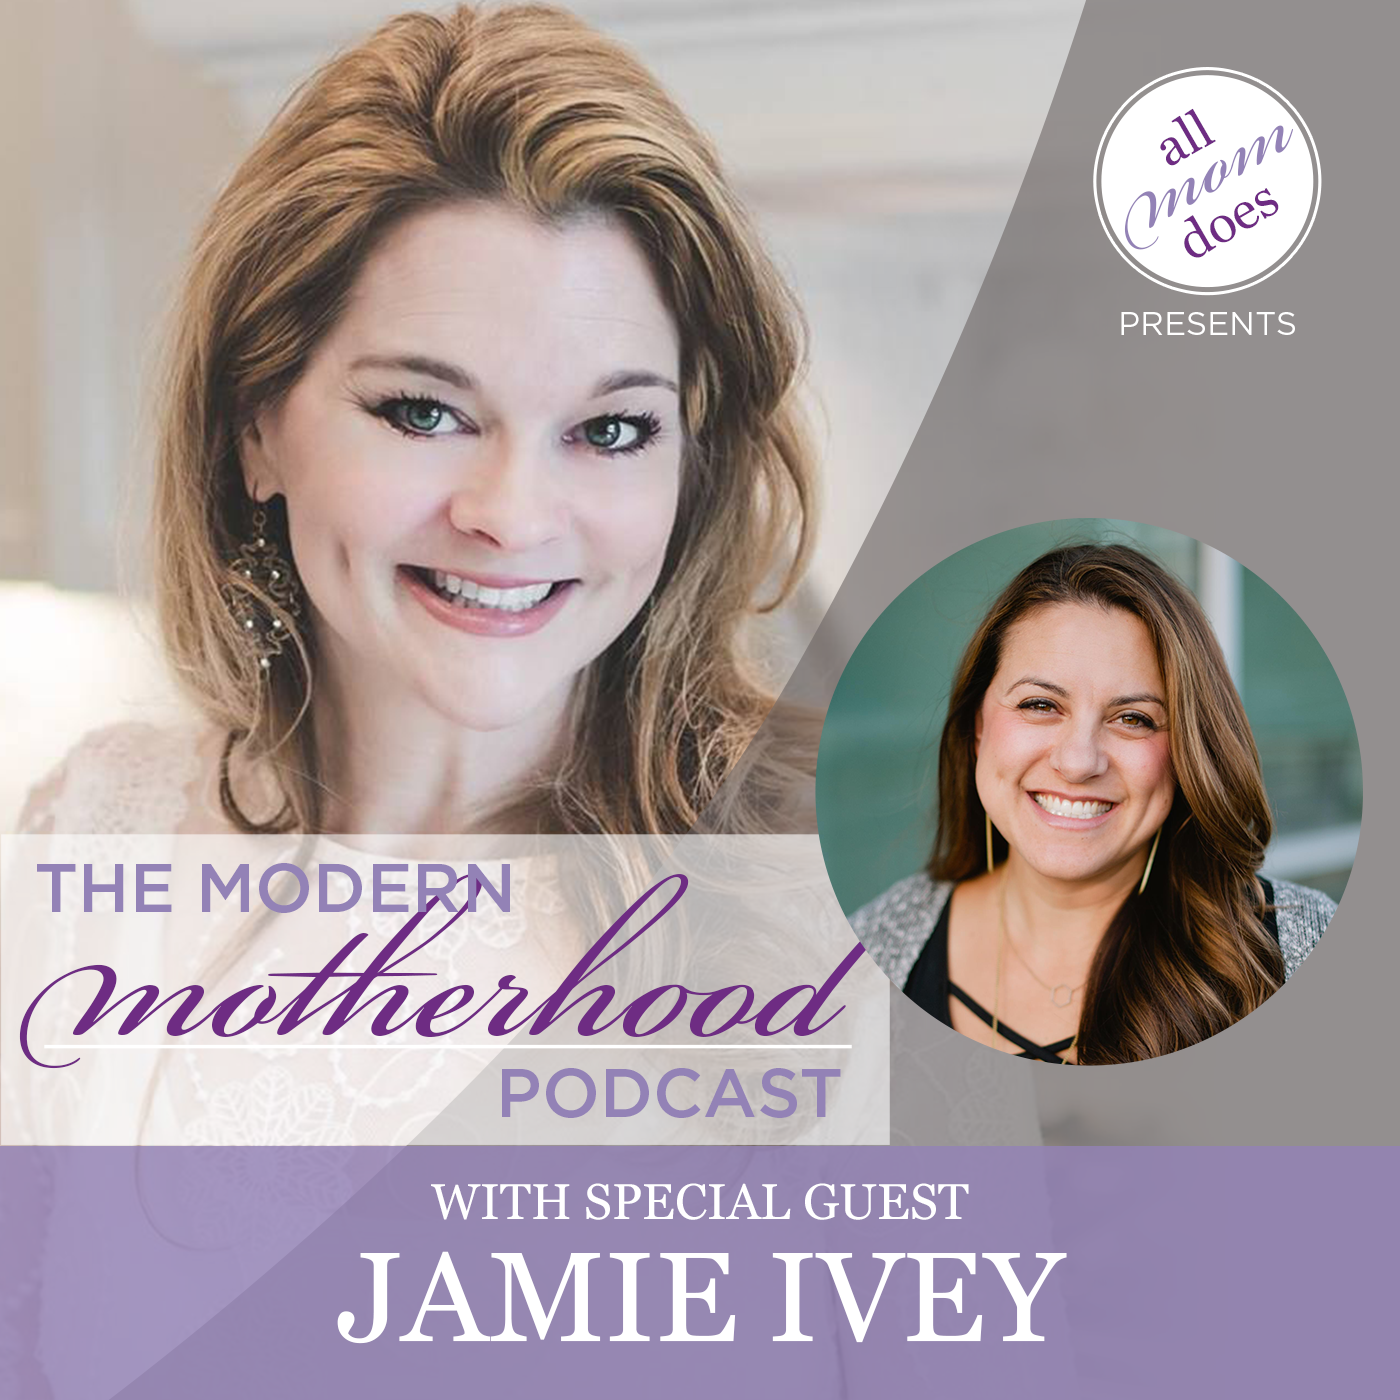 The Modern Motherhood Podcast #1: Jamie Ivey